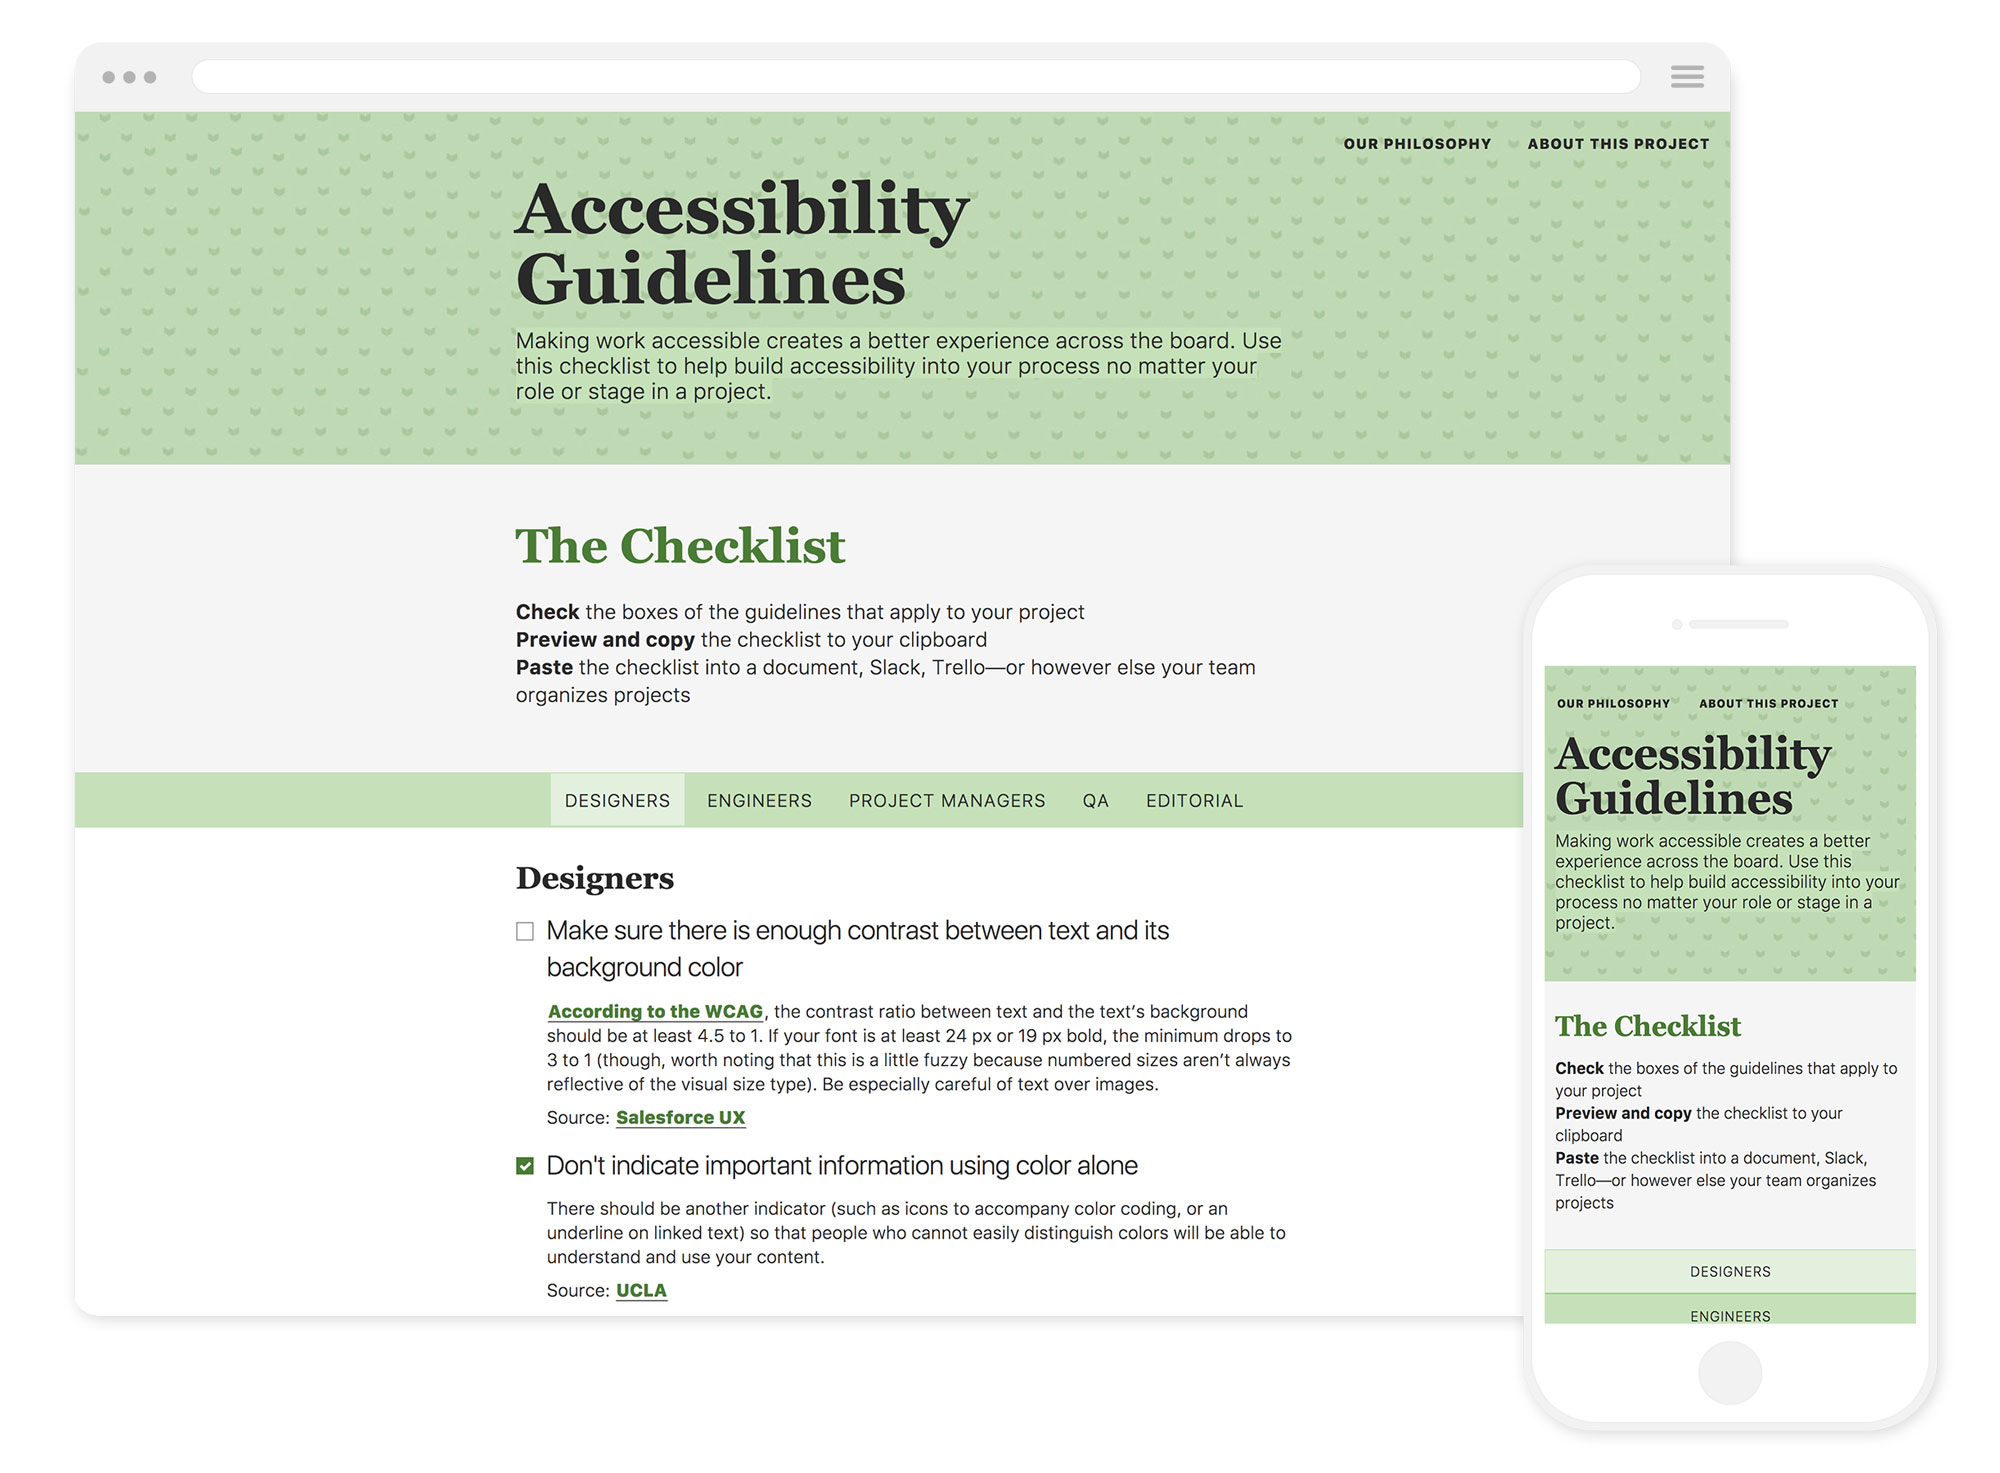 Image of the Accessibility Guidelines website